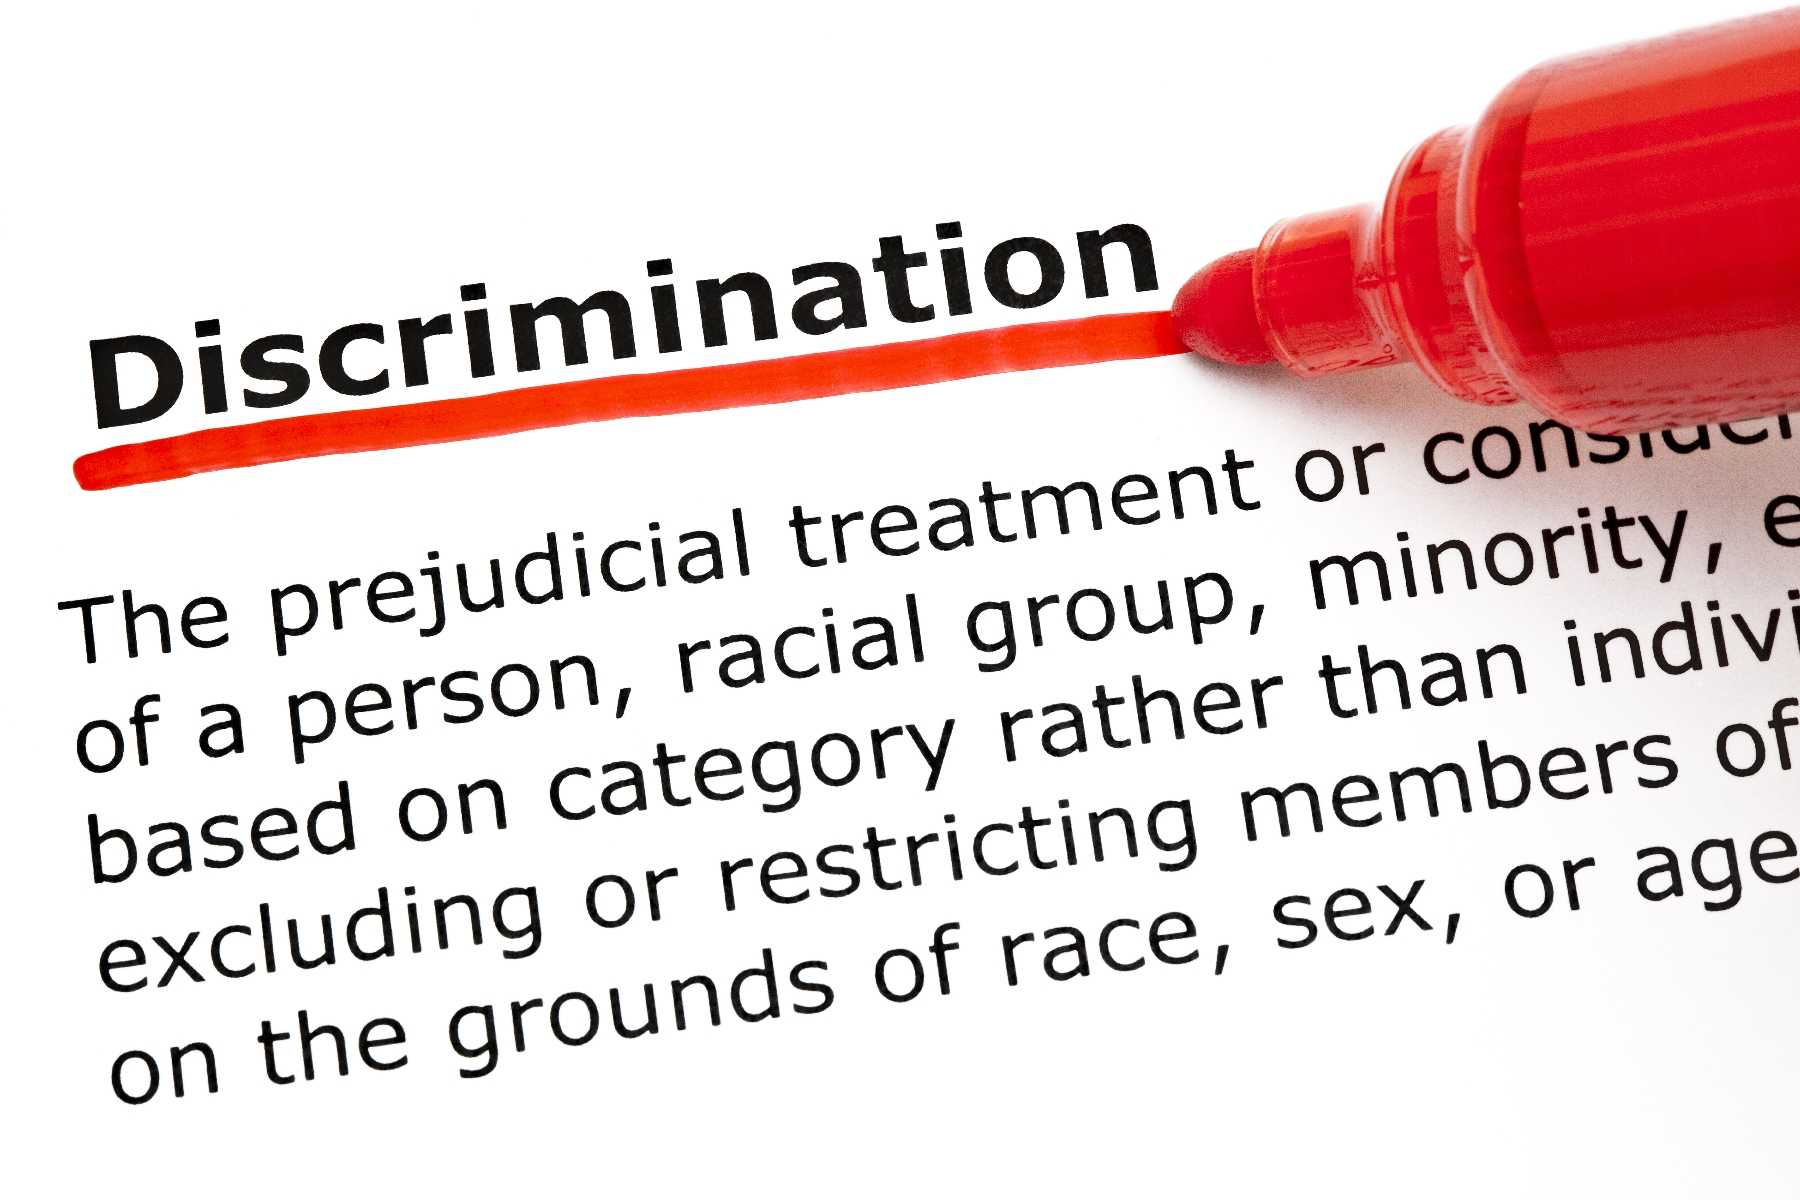 human rights and employer In certain circumstances, employees are bullied, harassed, or discriminated against based on their religion, race, cultural background, disability, or other ground.